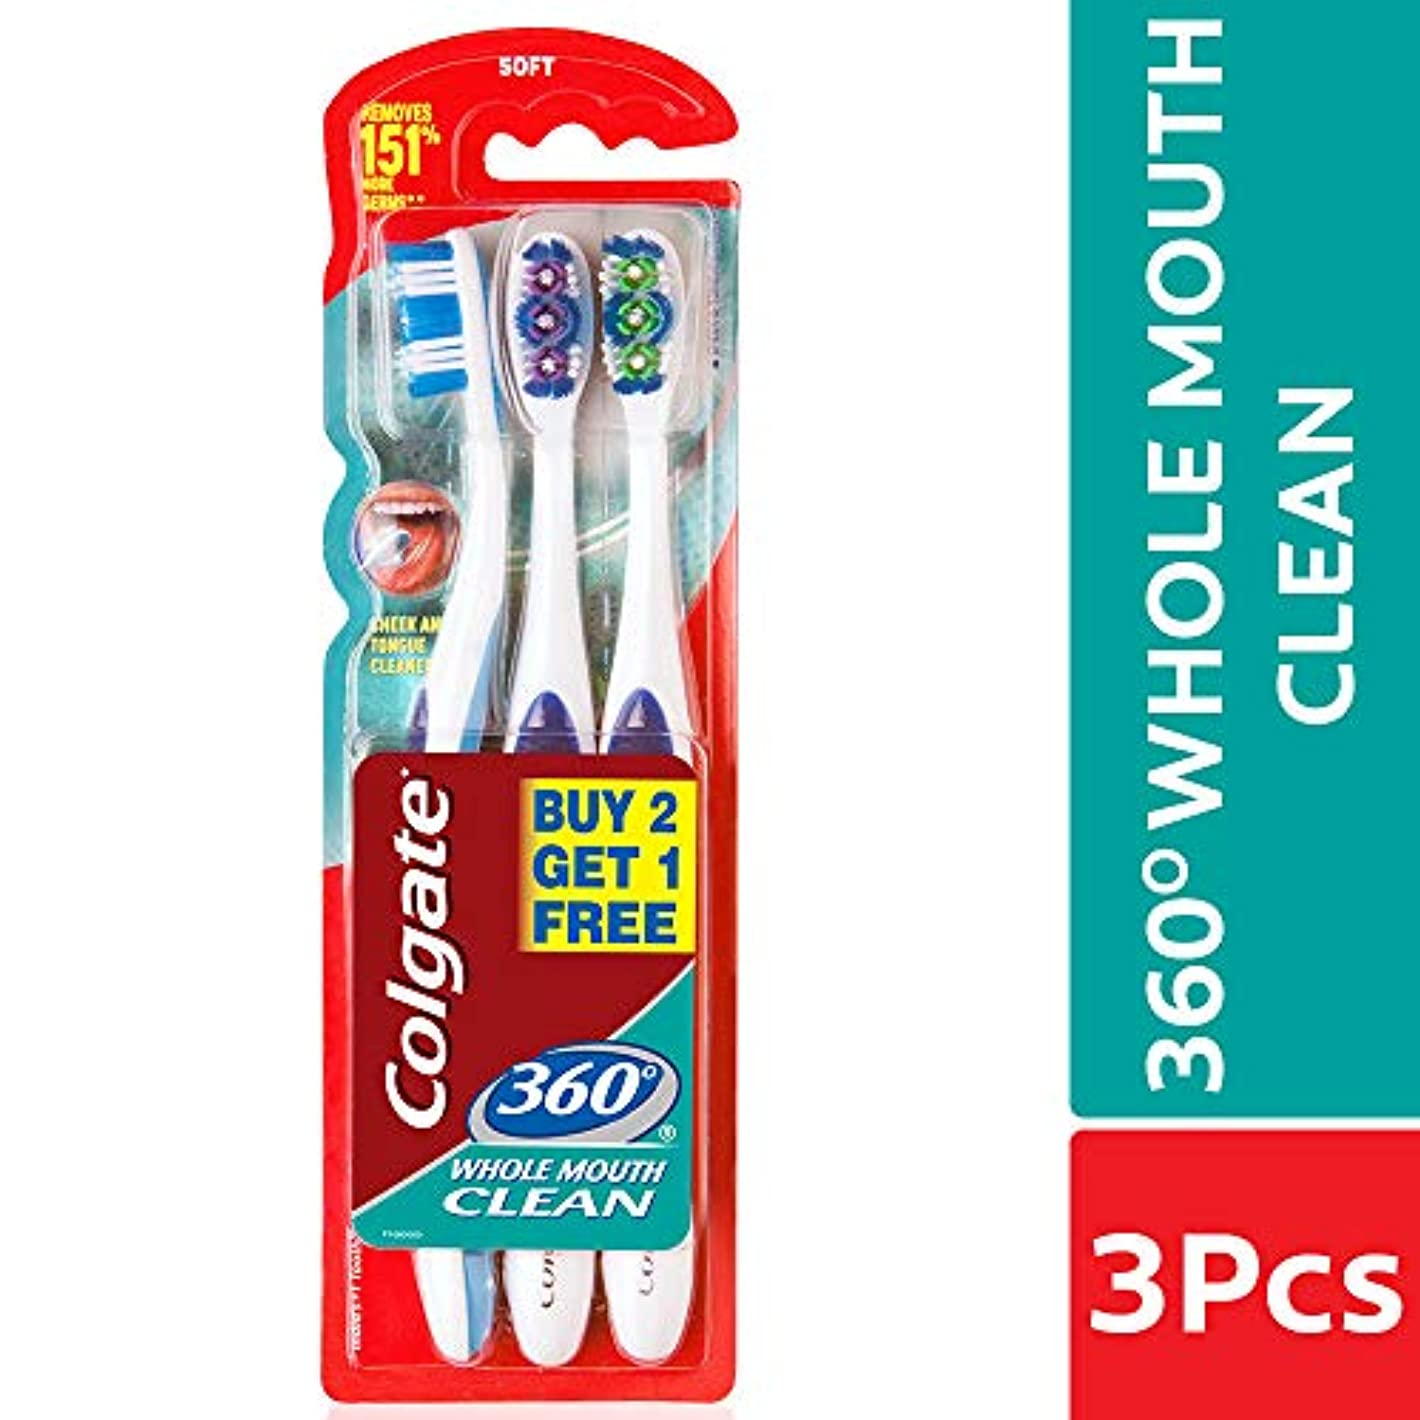 考古学的なペチコート優先Colgate 360 whole mouth clean (MEDIUM) toothbrush (3pc pack)